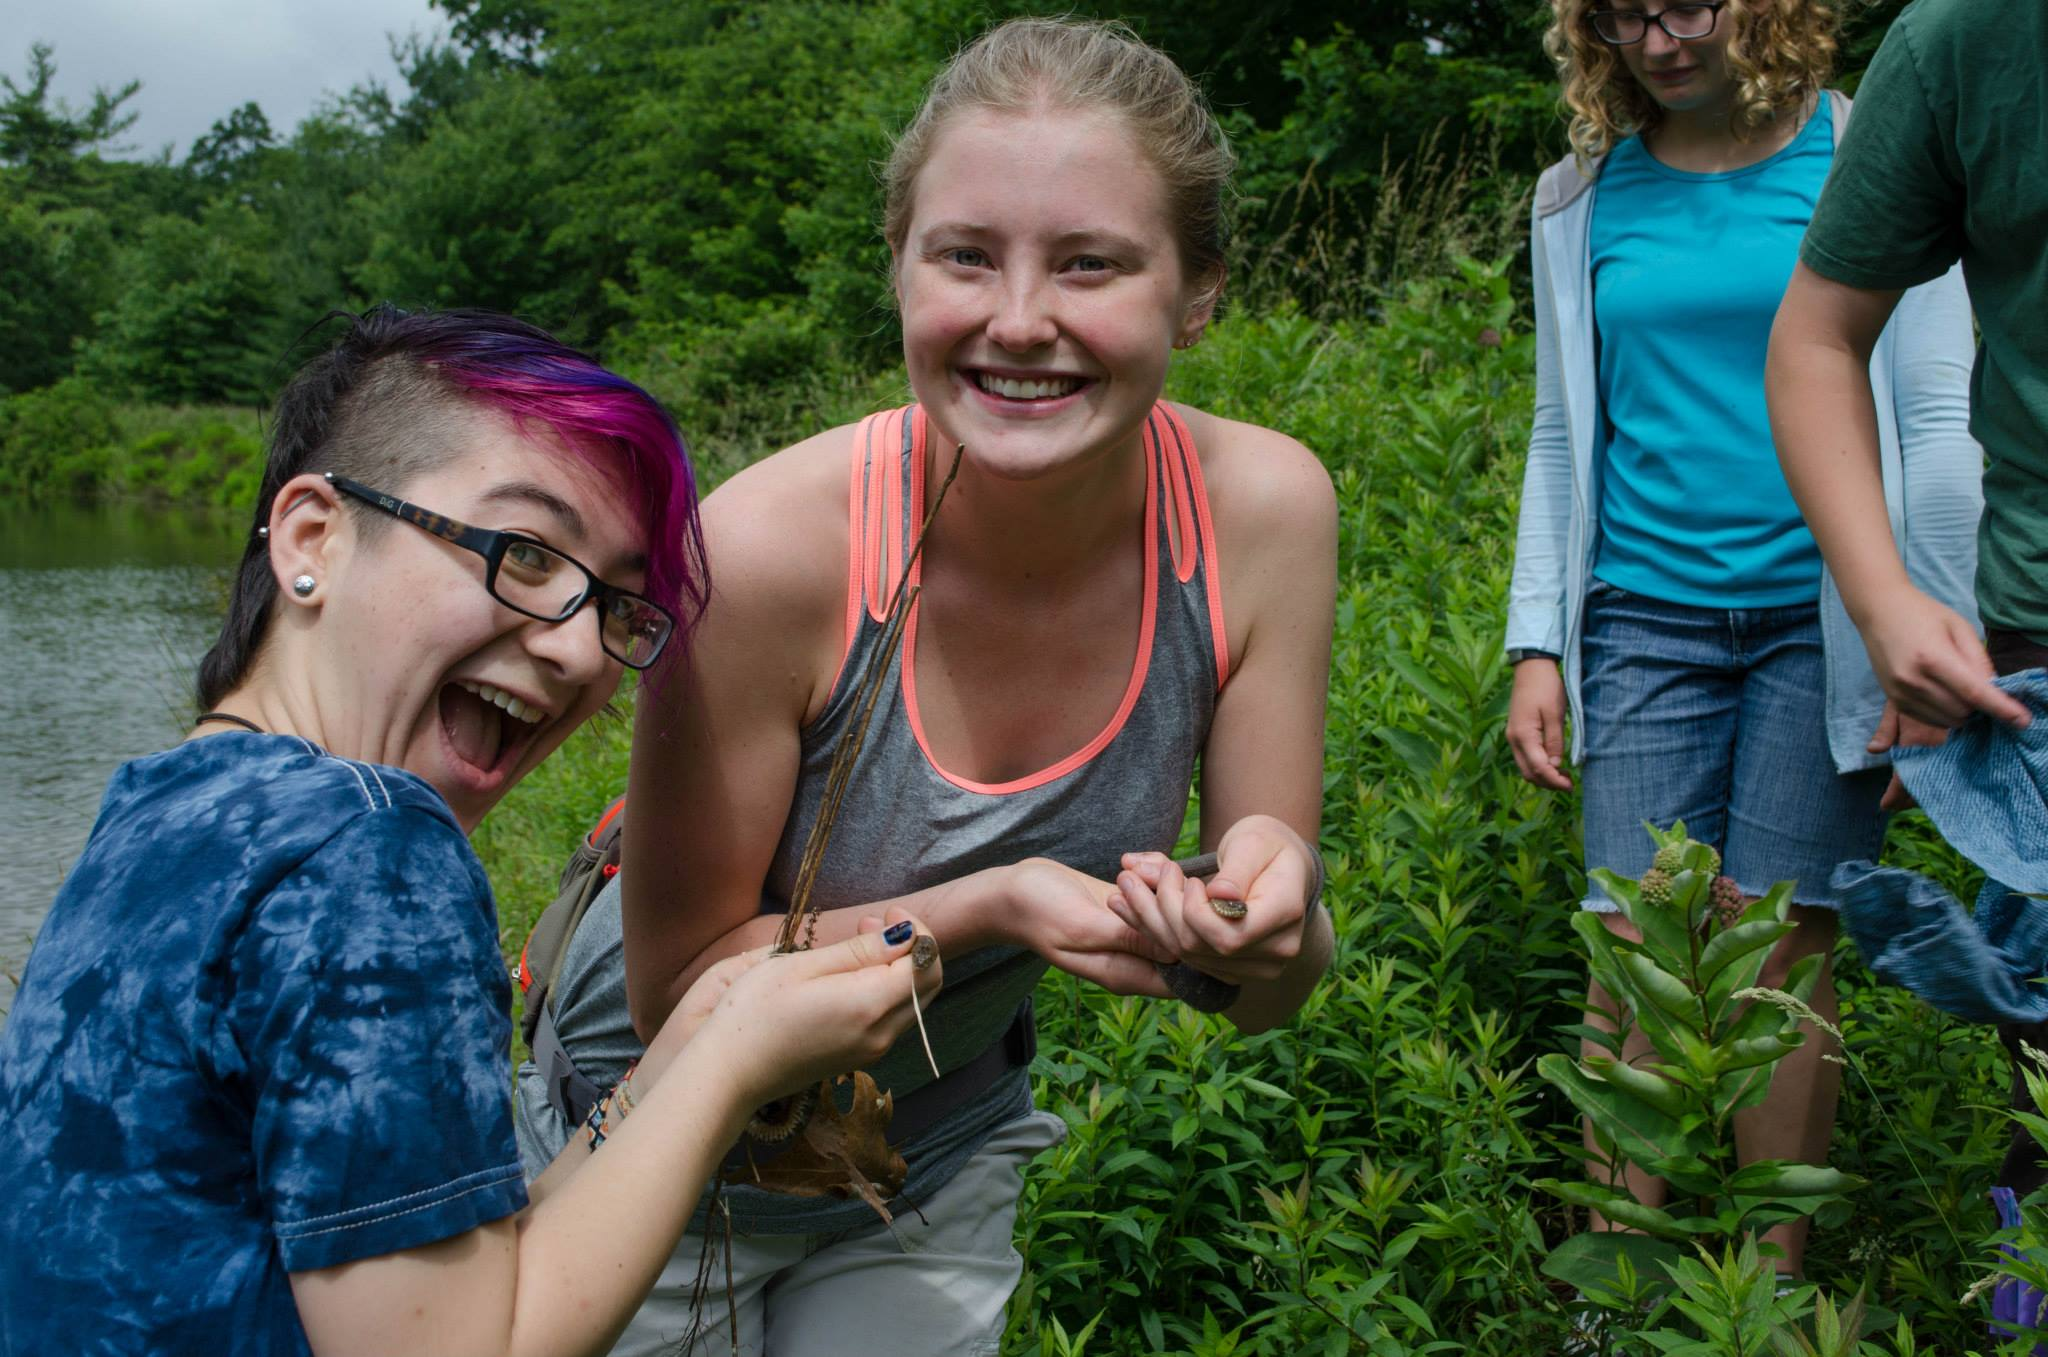 Sarah and Augie catching snakes